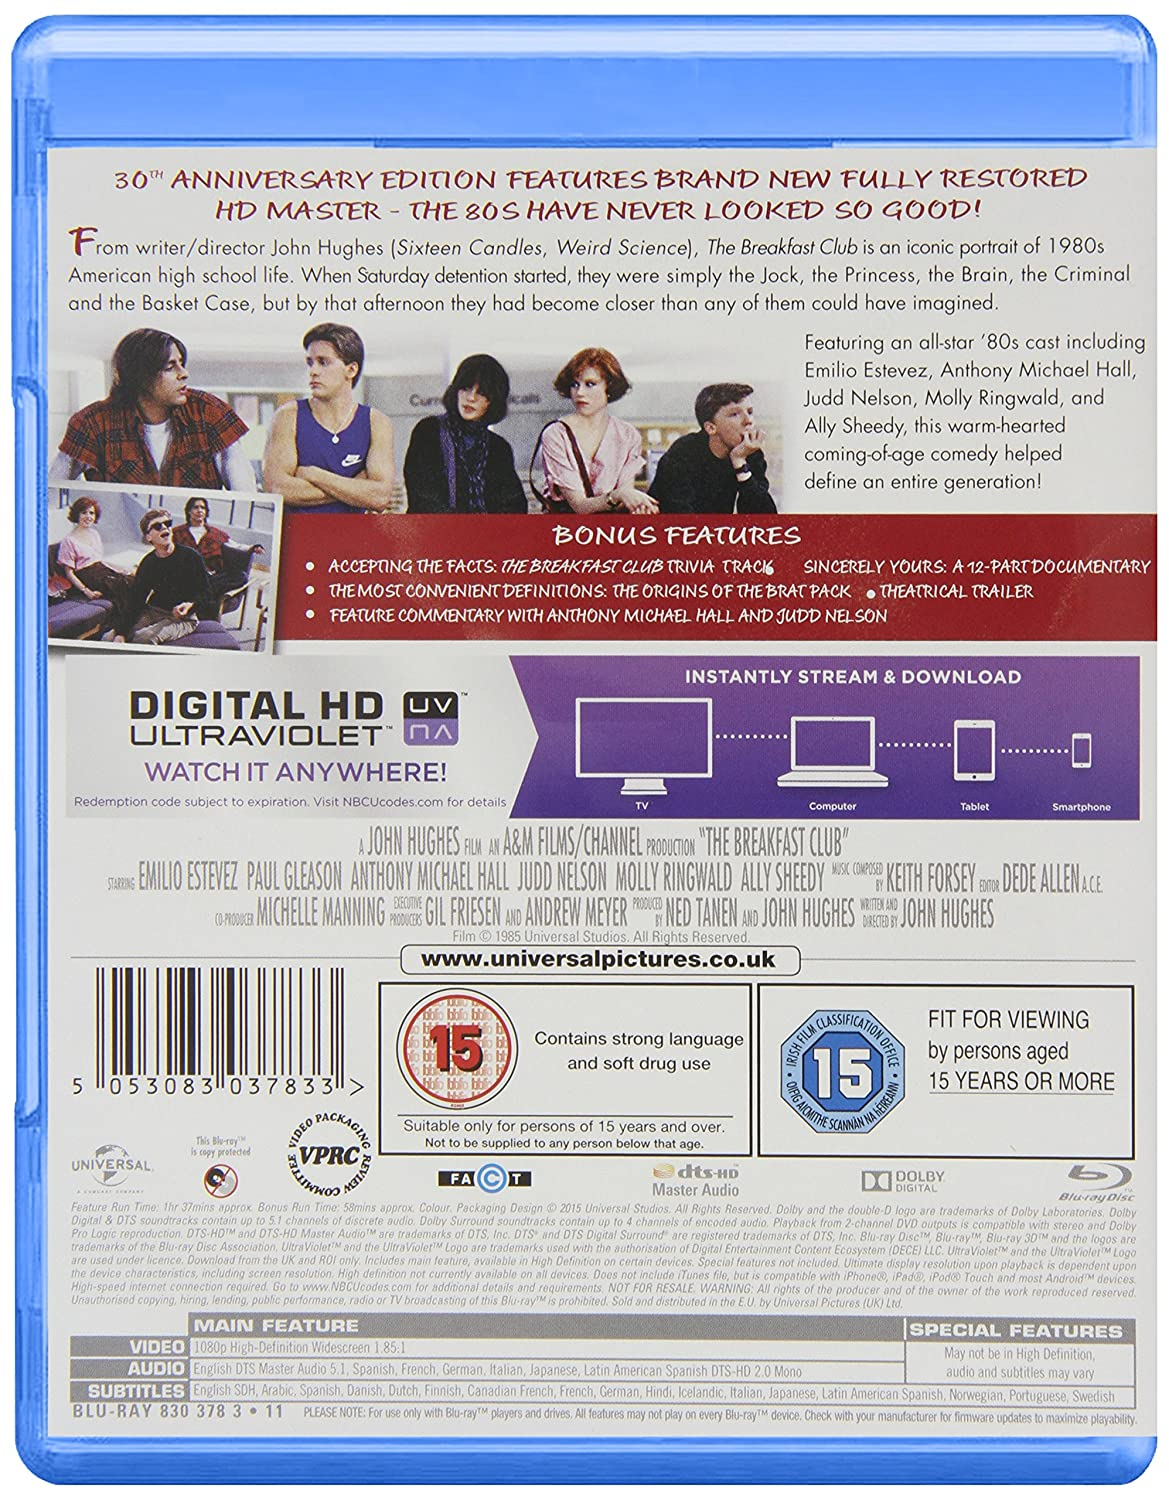 the breakfast club essay page png awsaccesskeyid akiaiaywevoldtia  breakfast club th anniversary edition blu ray uv copy breakfast club 30th anniversary edition blu ray